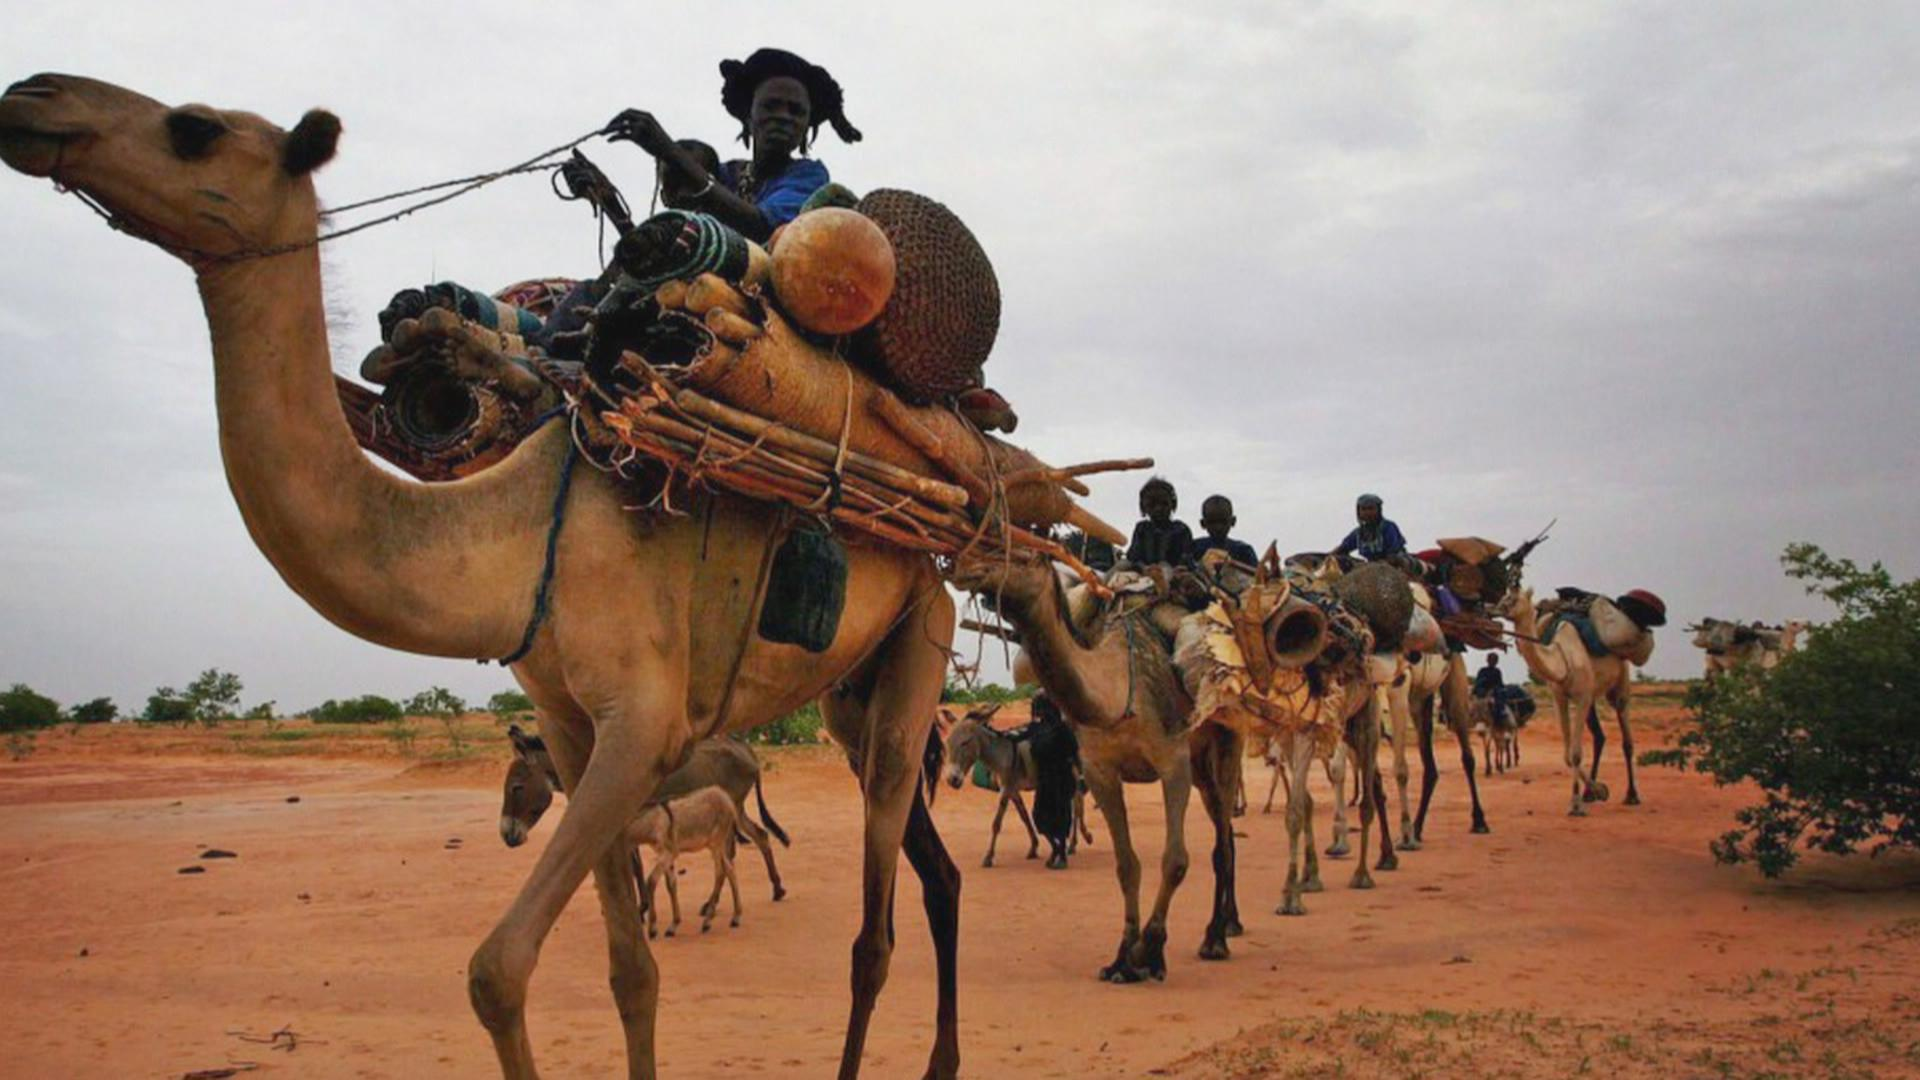 The war in Mali forced many Tuareg people to leave their homes.